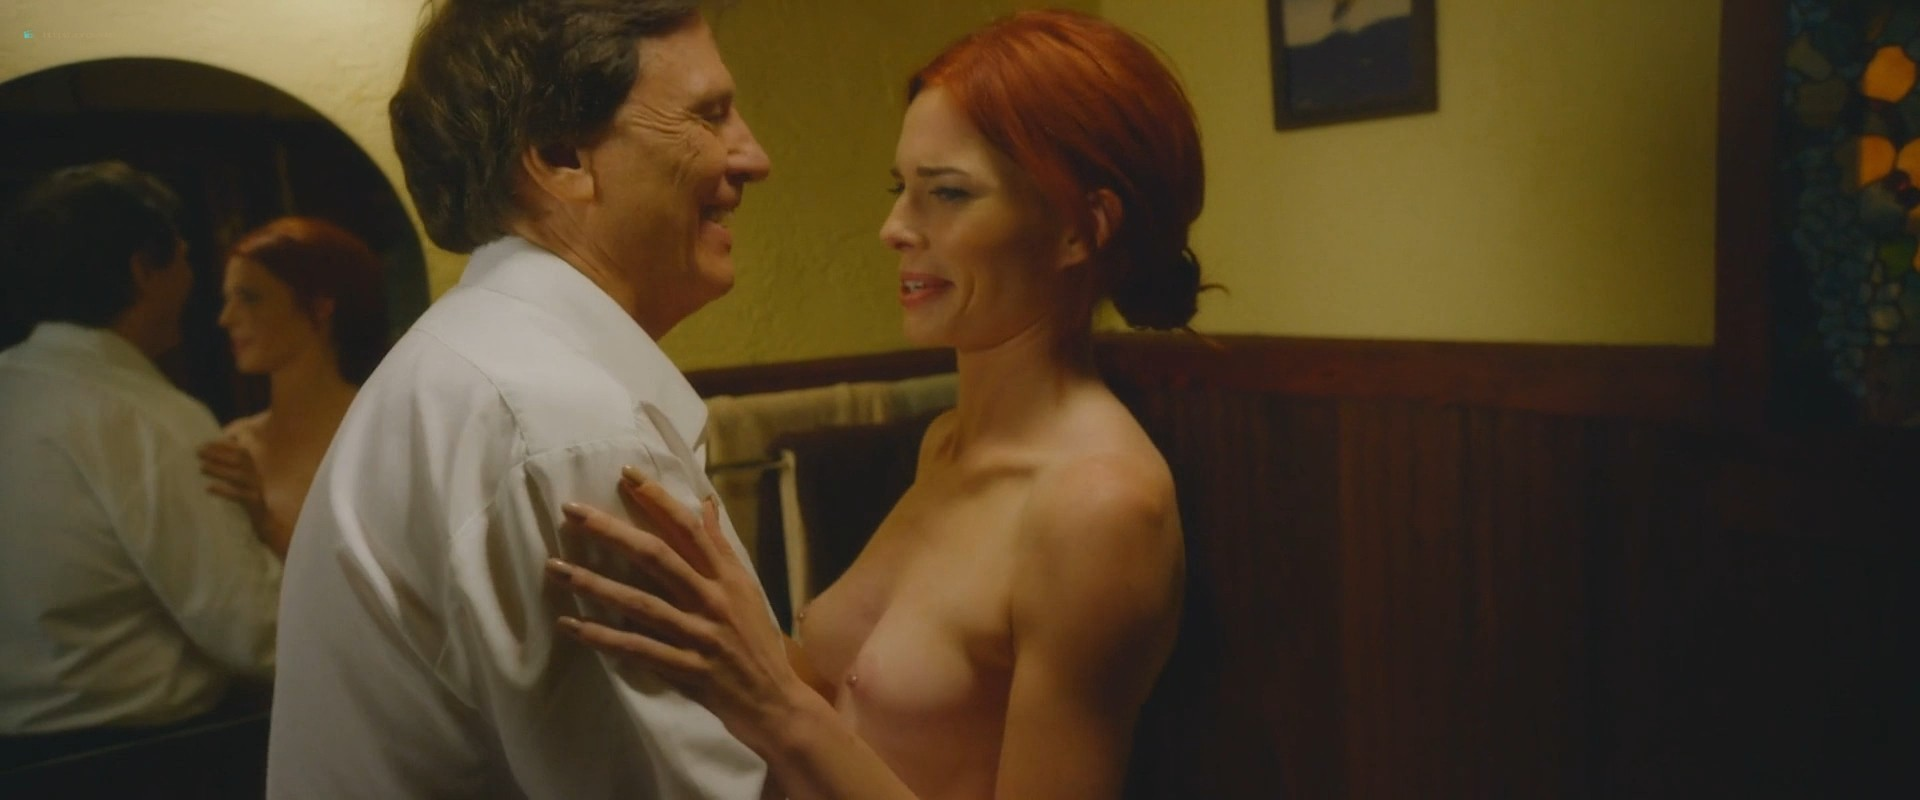 Chloe Dykstra nude topless and hot Ana Foxx and others hot - Diminuendo (2018) HD 1080p Web (10)